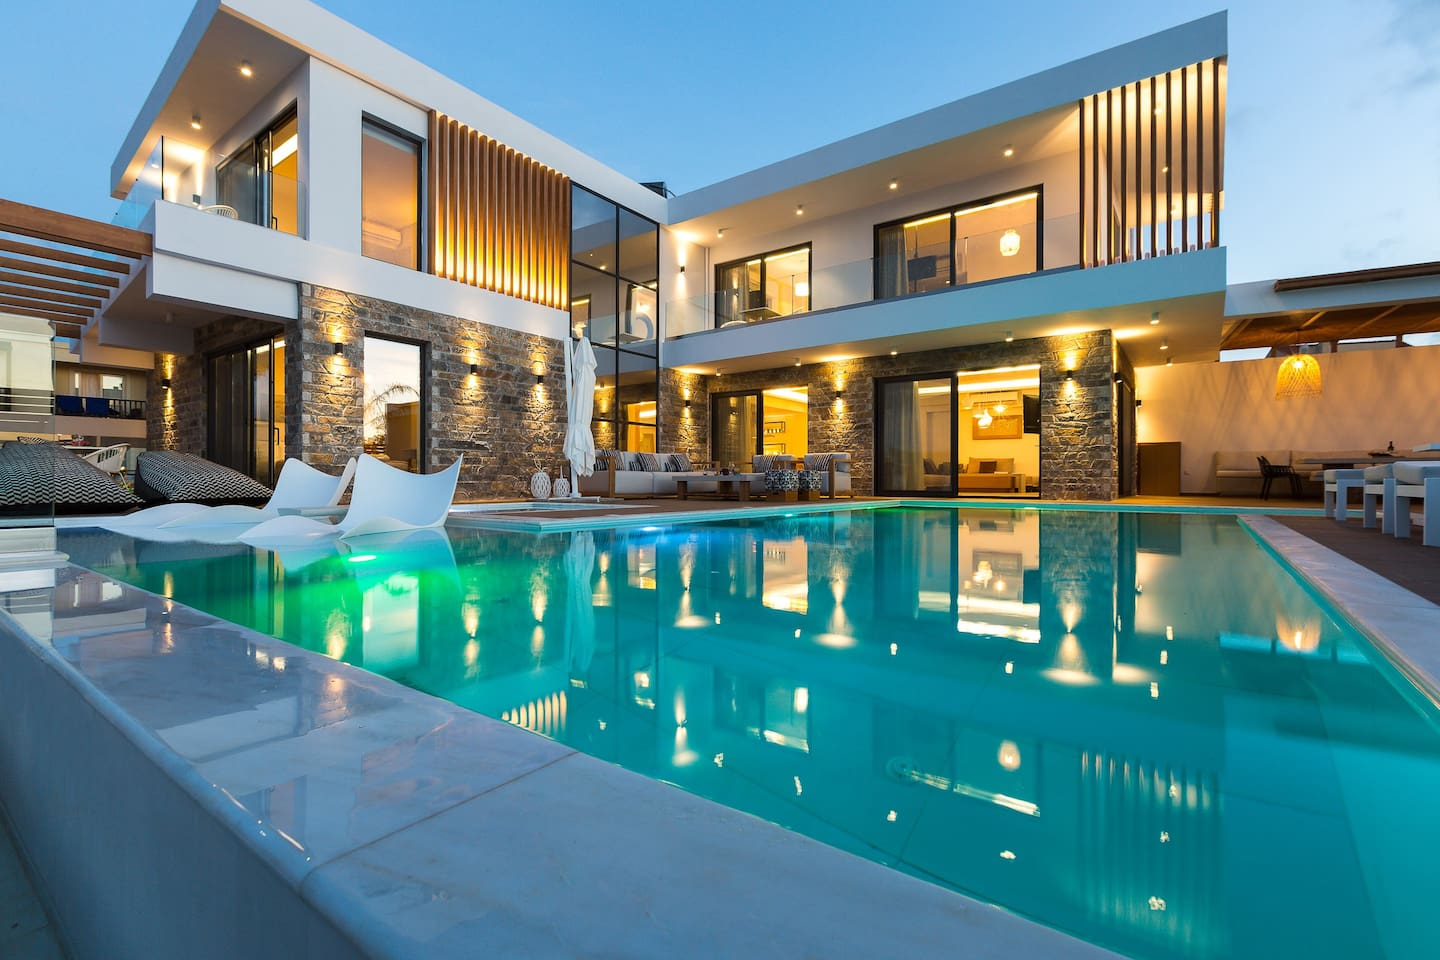 When it comes to wow-factor locations, Wave Villa delivers on every level. A true inspiration for impromptu getaways!